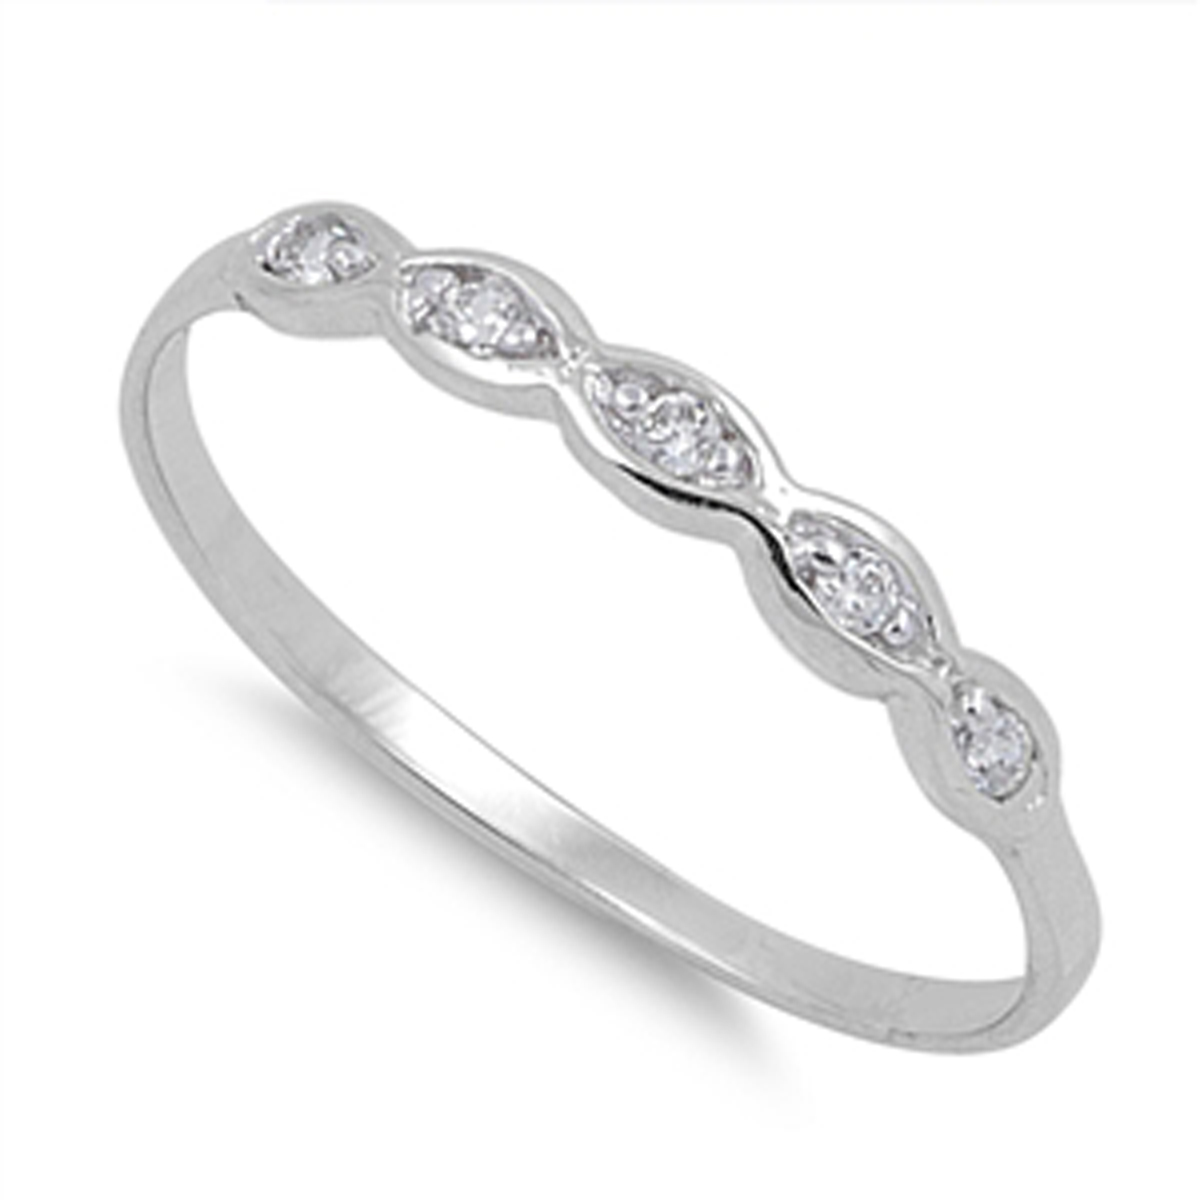 Sterling Silver Women's Flawless Colorless Cubic Zirconia Very Small Thin Wedding Ring (Sizes 1-10) (Ring Size 5)